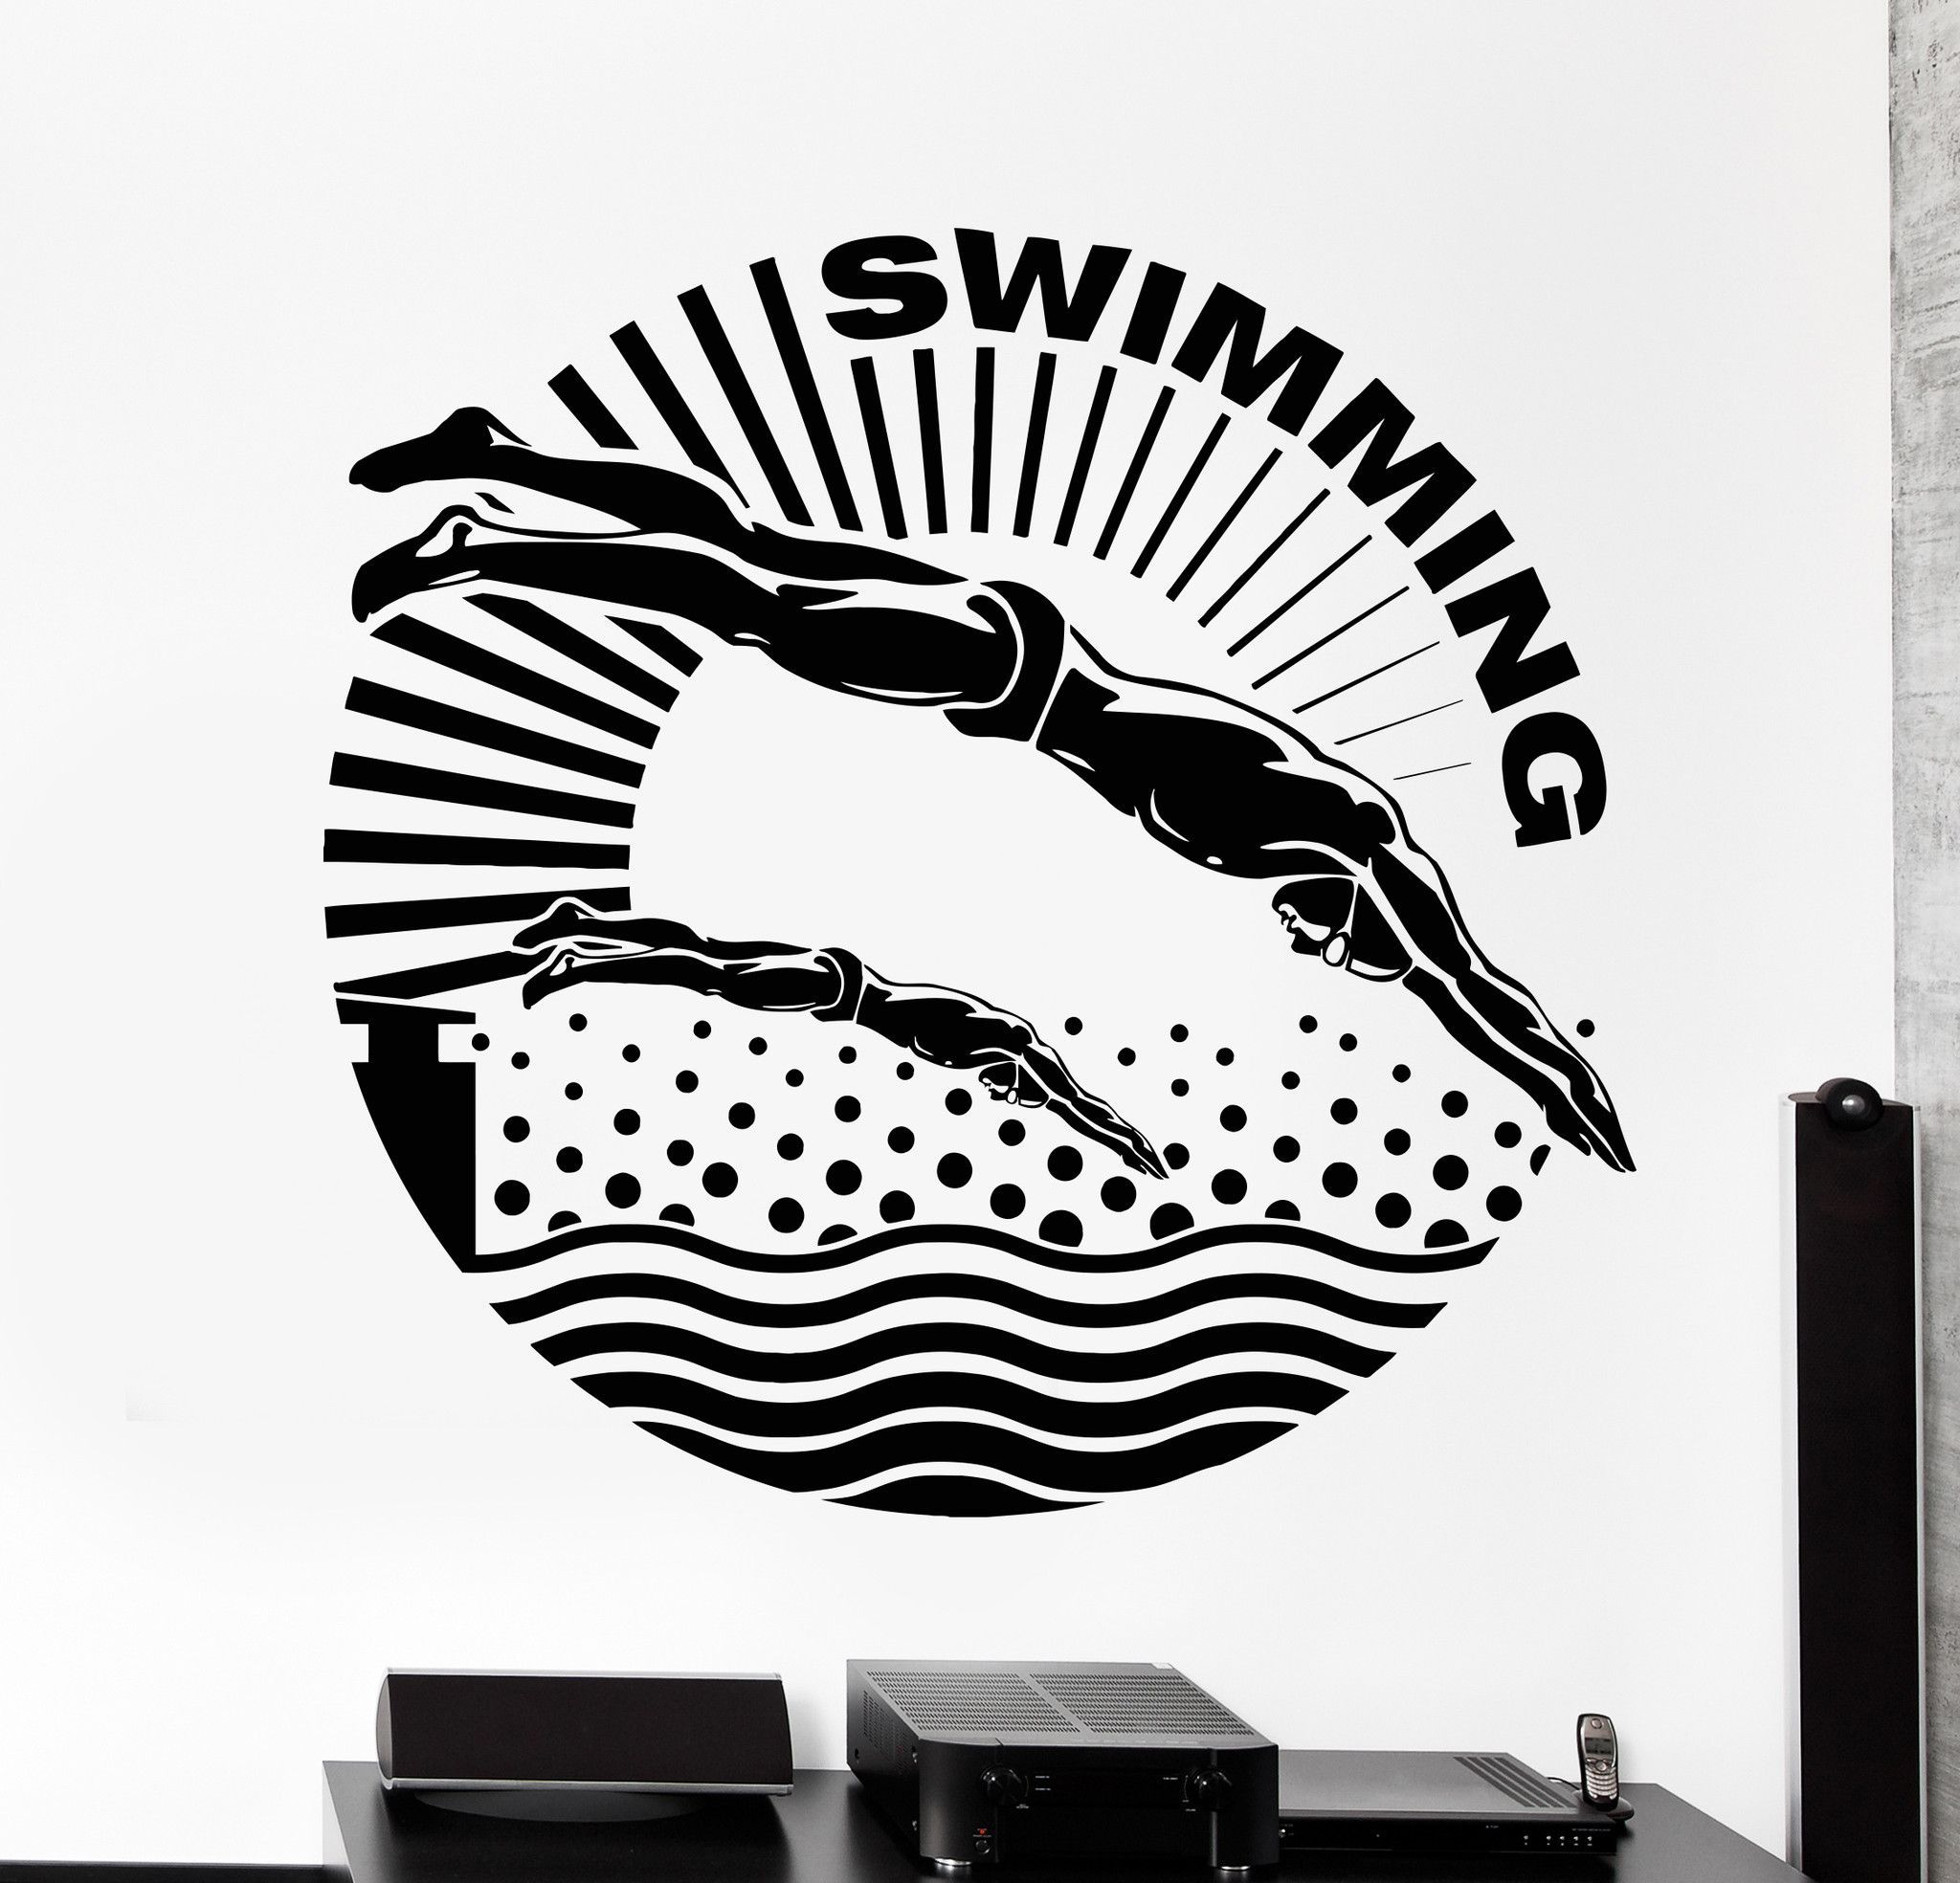 Vinyl Wall Decal Swimmer Water Sport Swimming Pool Stickers (829ig)